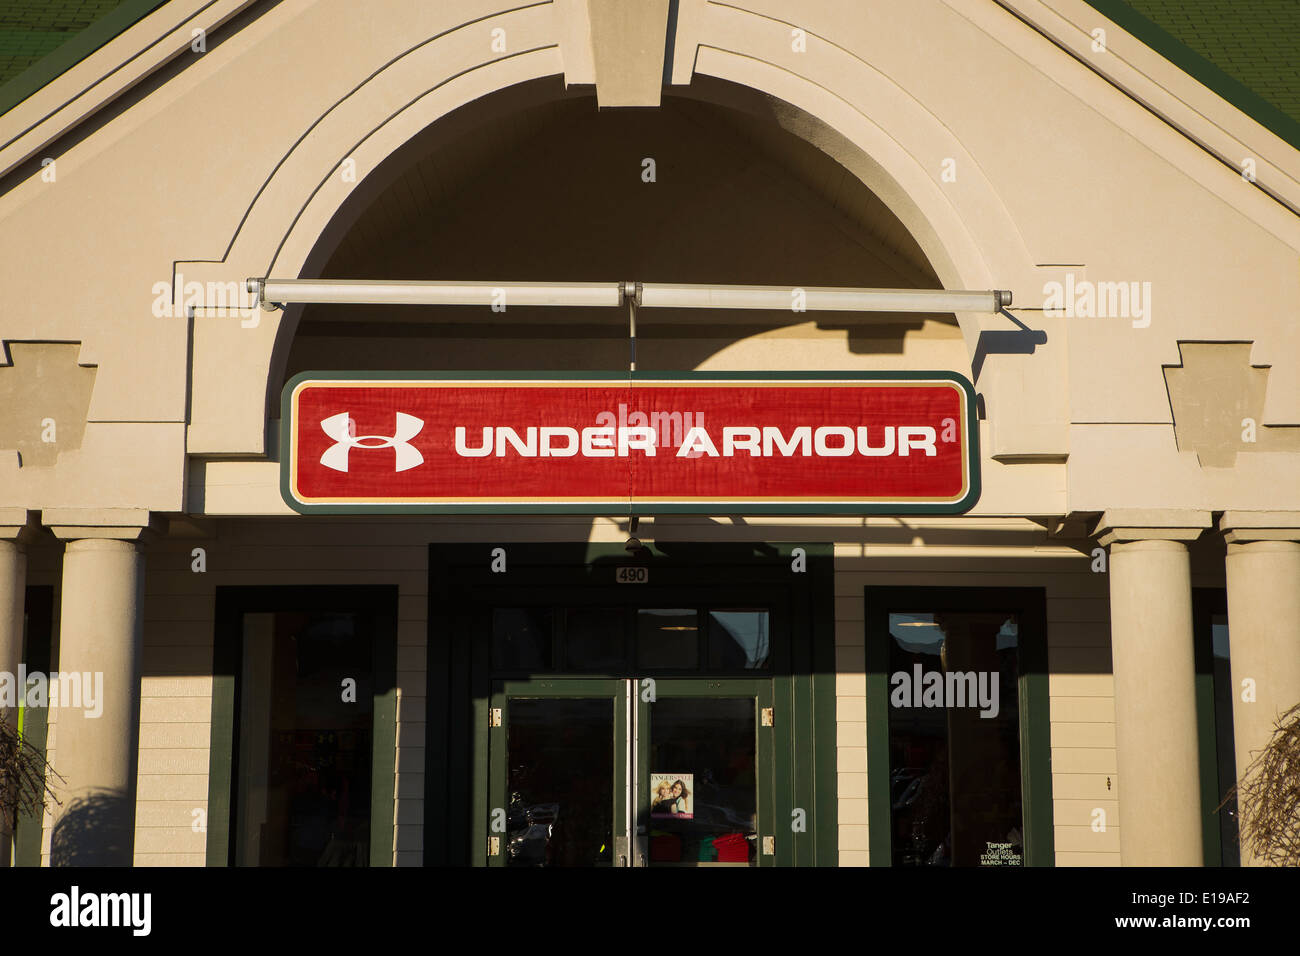 Under Armour Store Is Pictured In Tanger Outlets In Sevierville, Tennessee